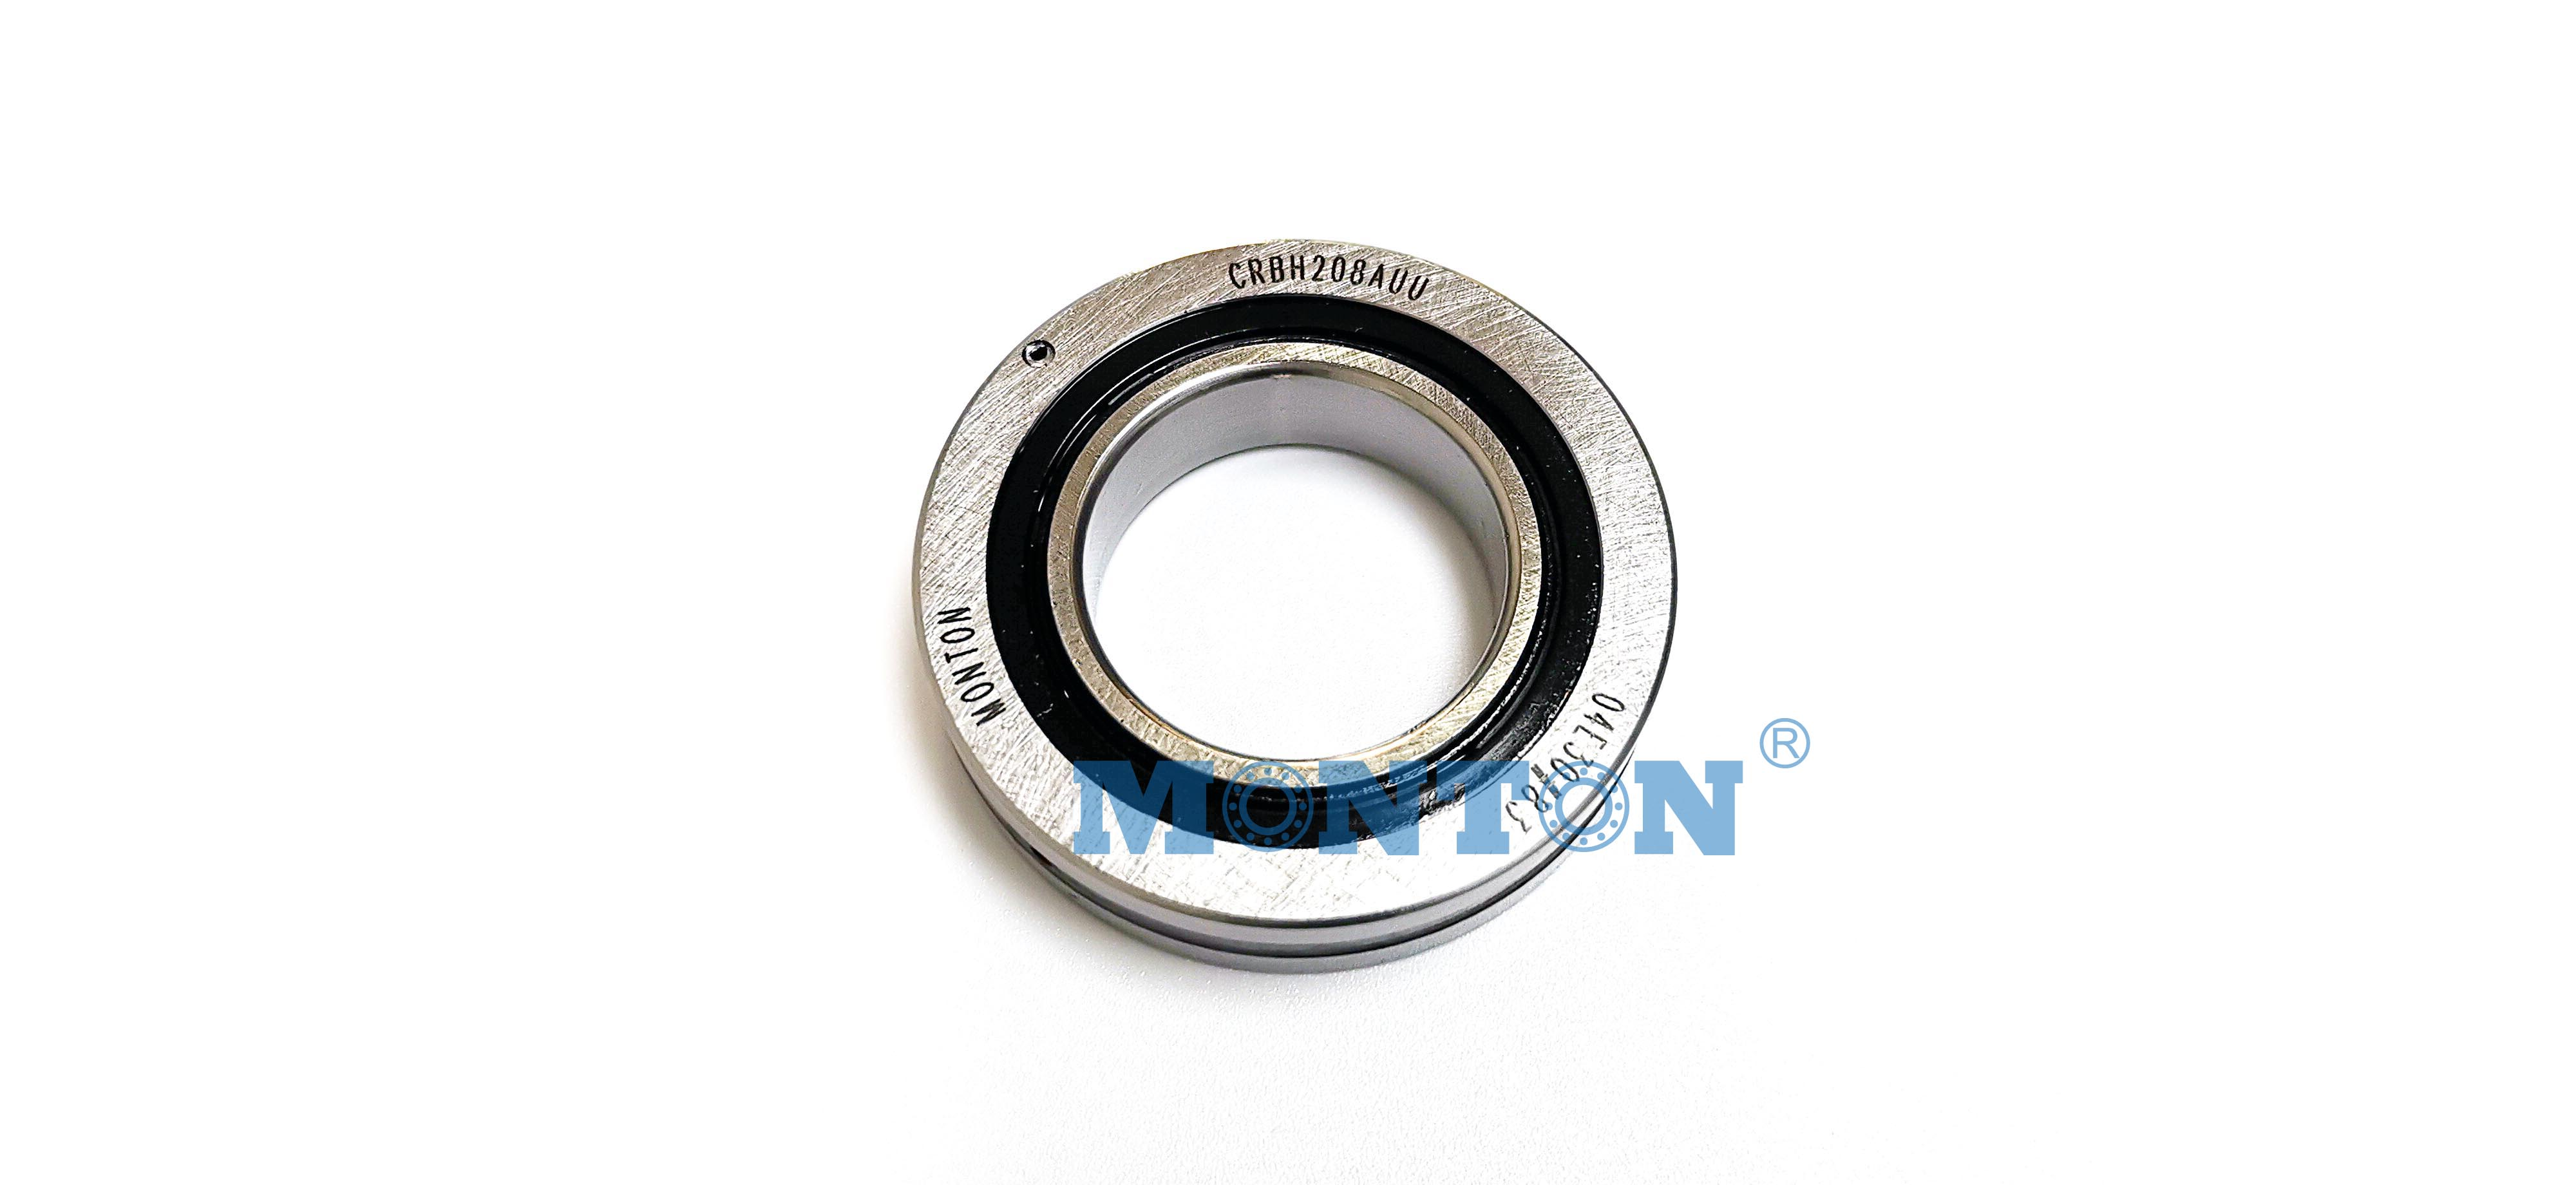 CRBH208AUU 20*36*8mm Super slim crossed roller bearing for compact surveillance camera